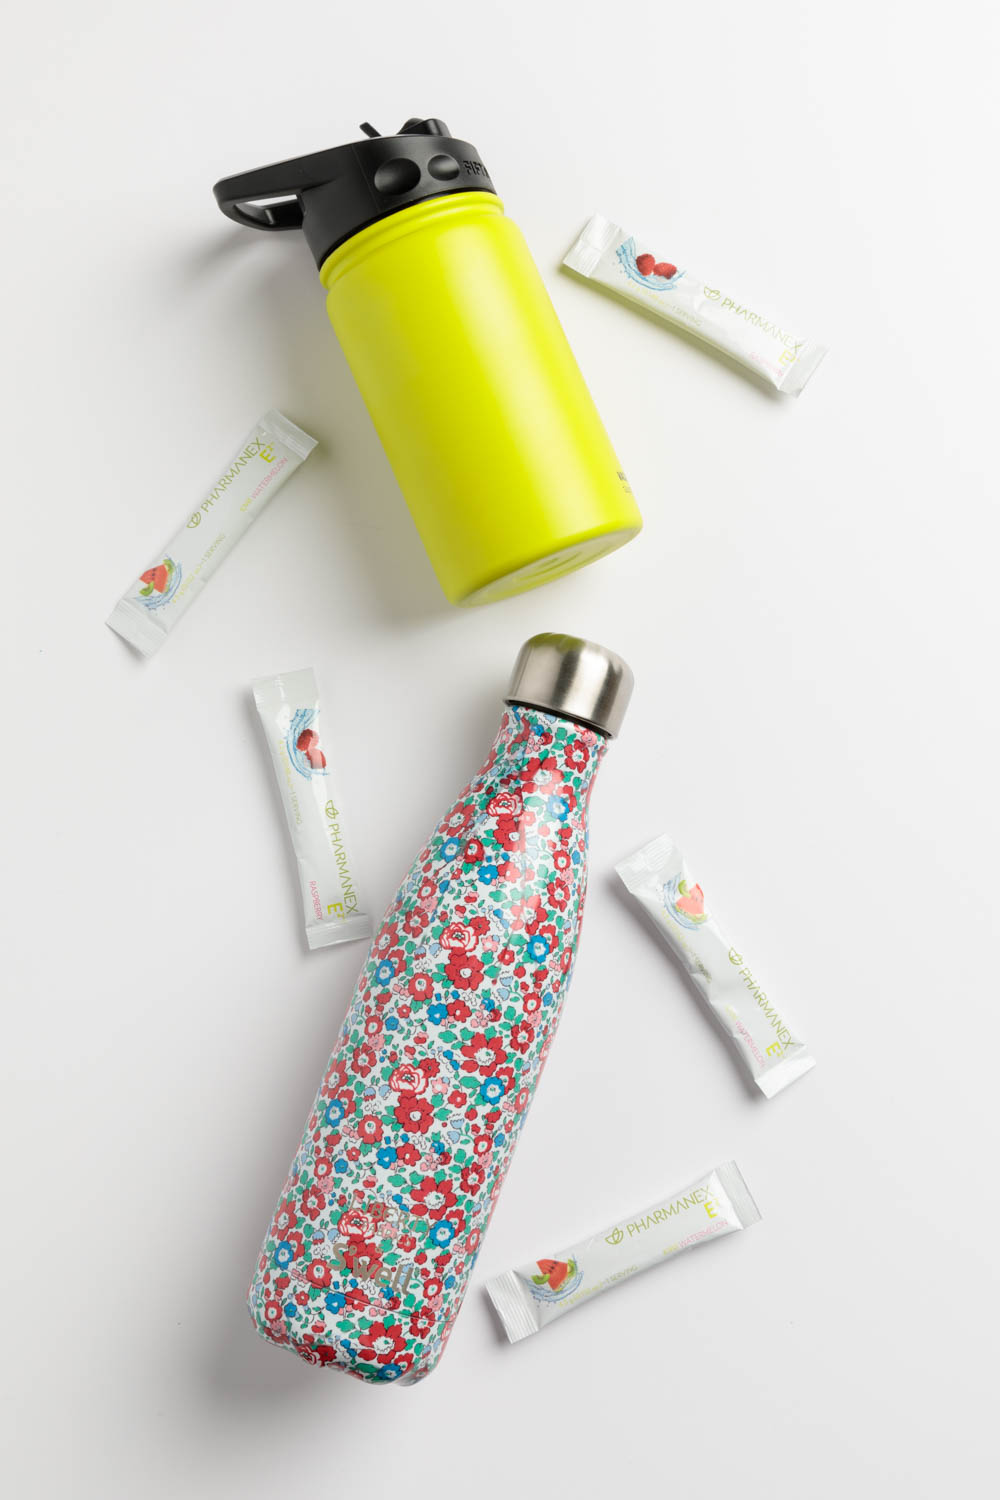 Stay hydrated with Pharmanex Pure Lift